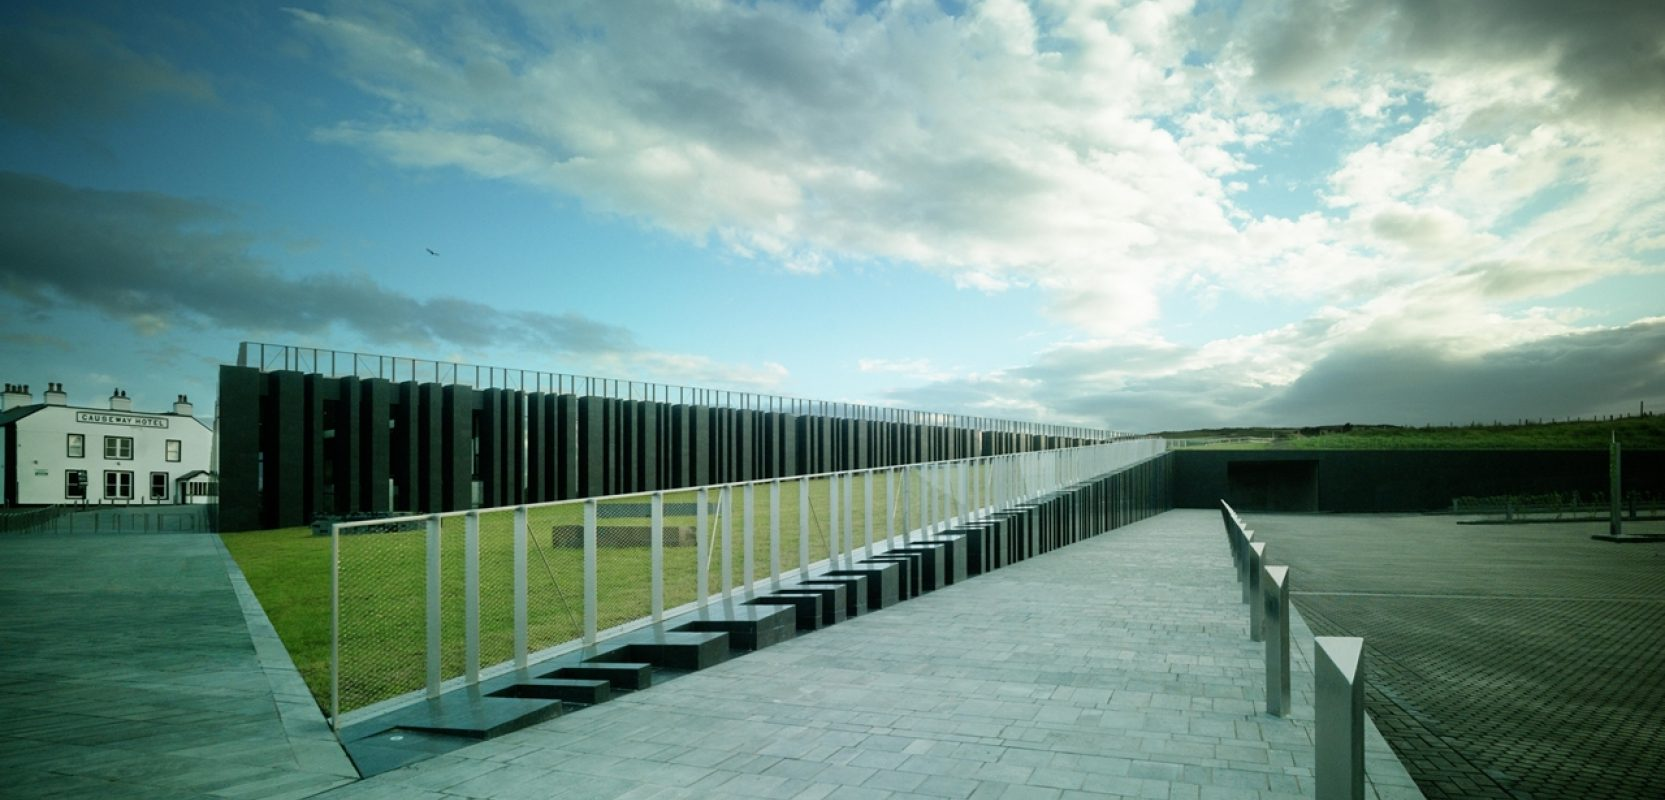 Images of Giant's Causeway Visitor Centre project